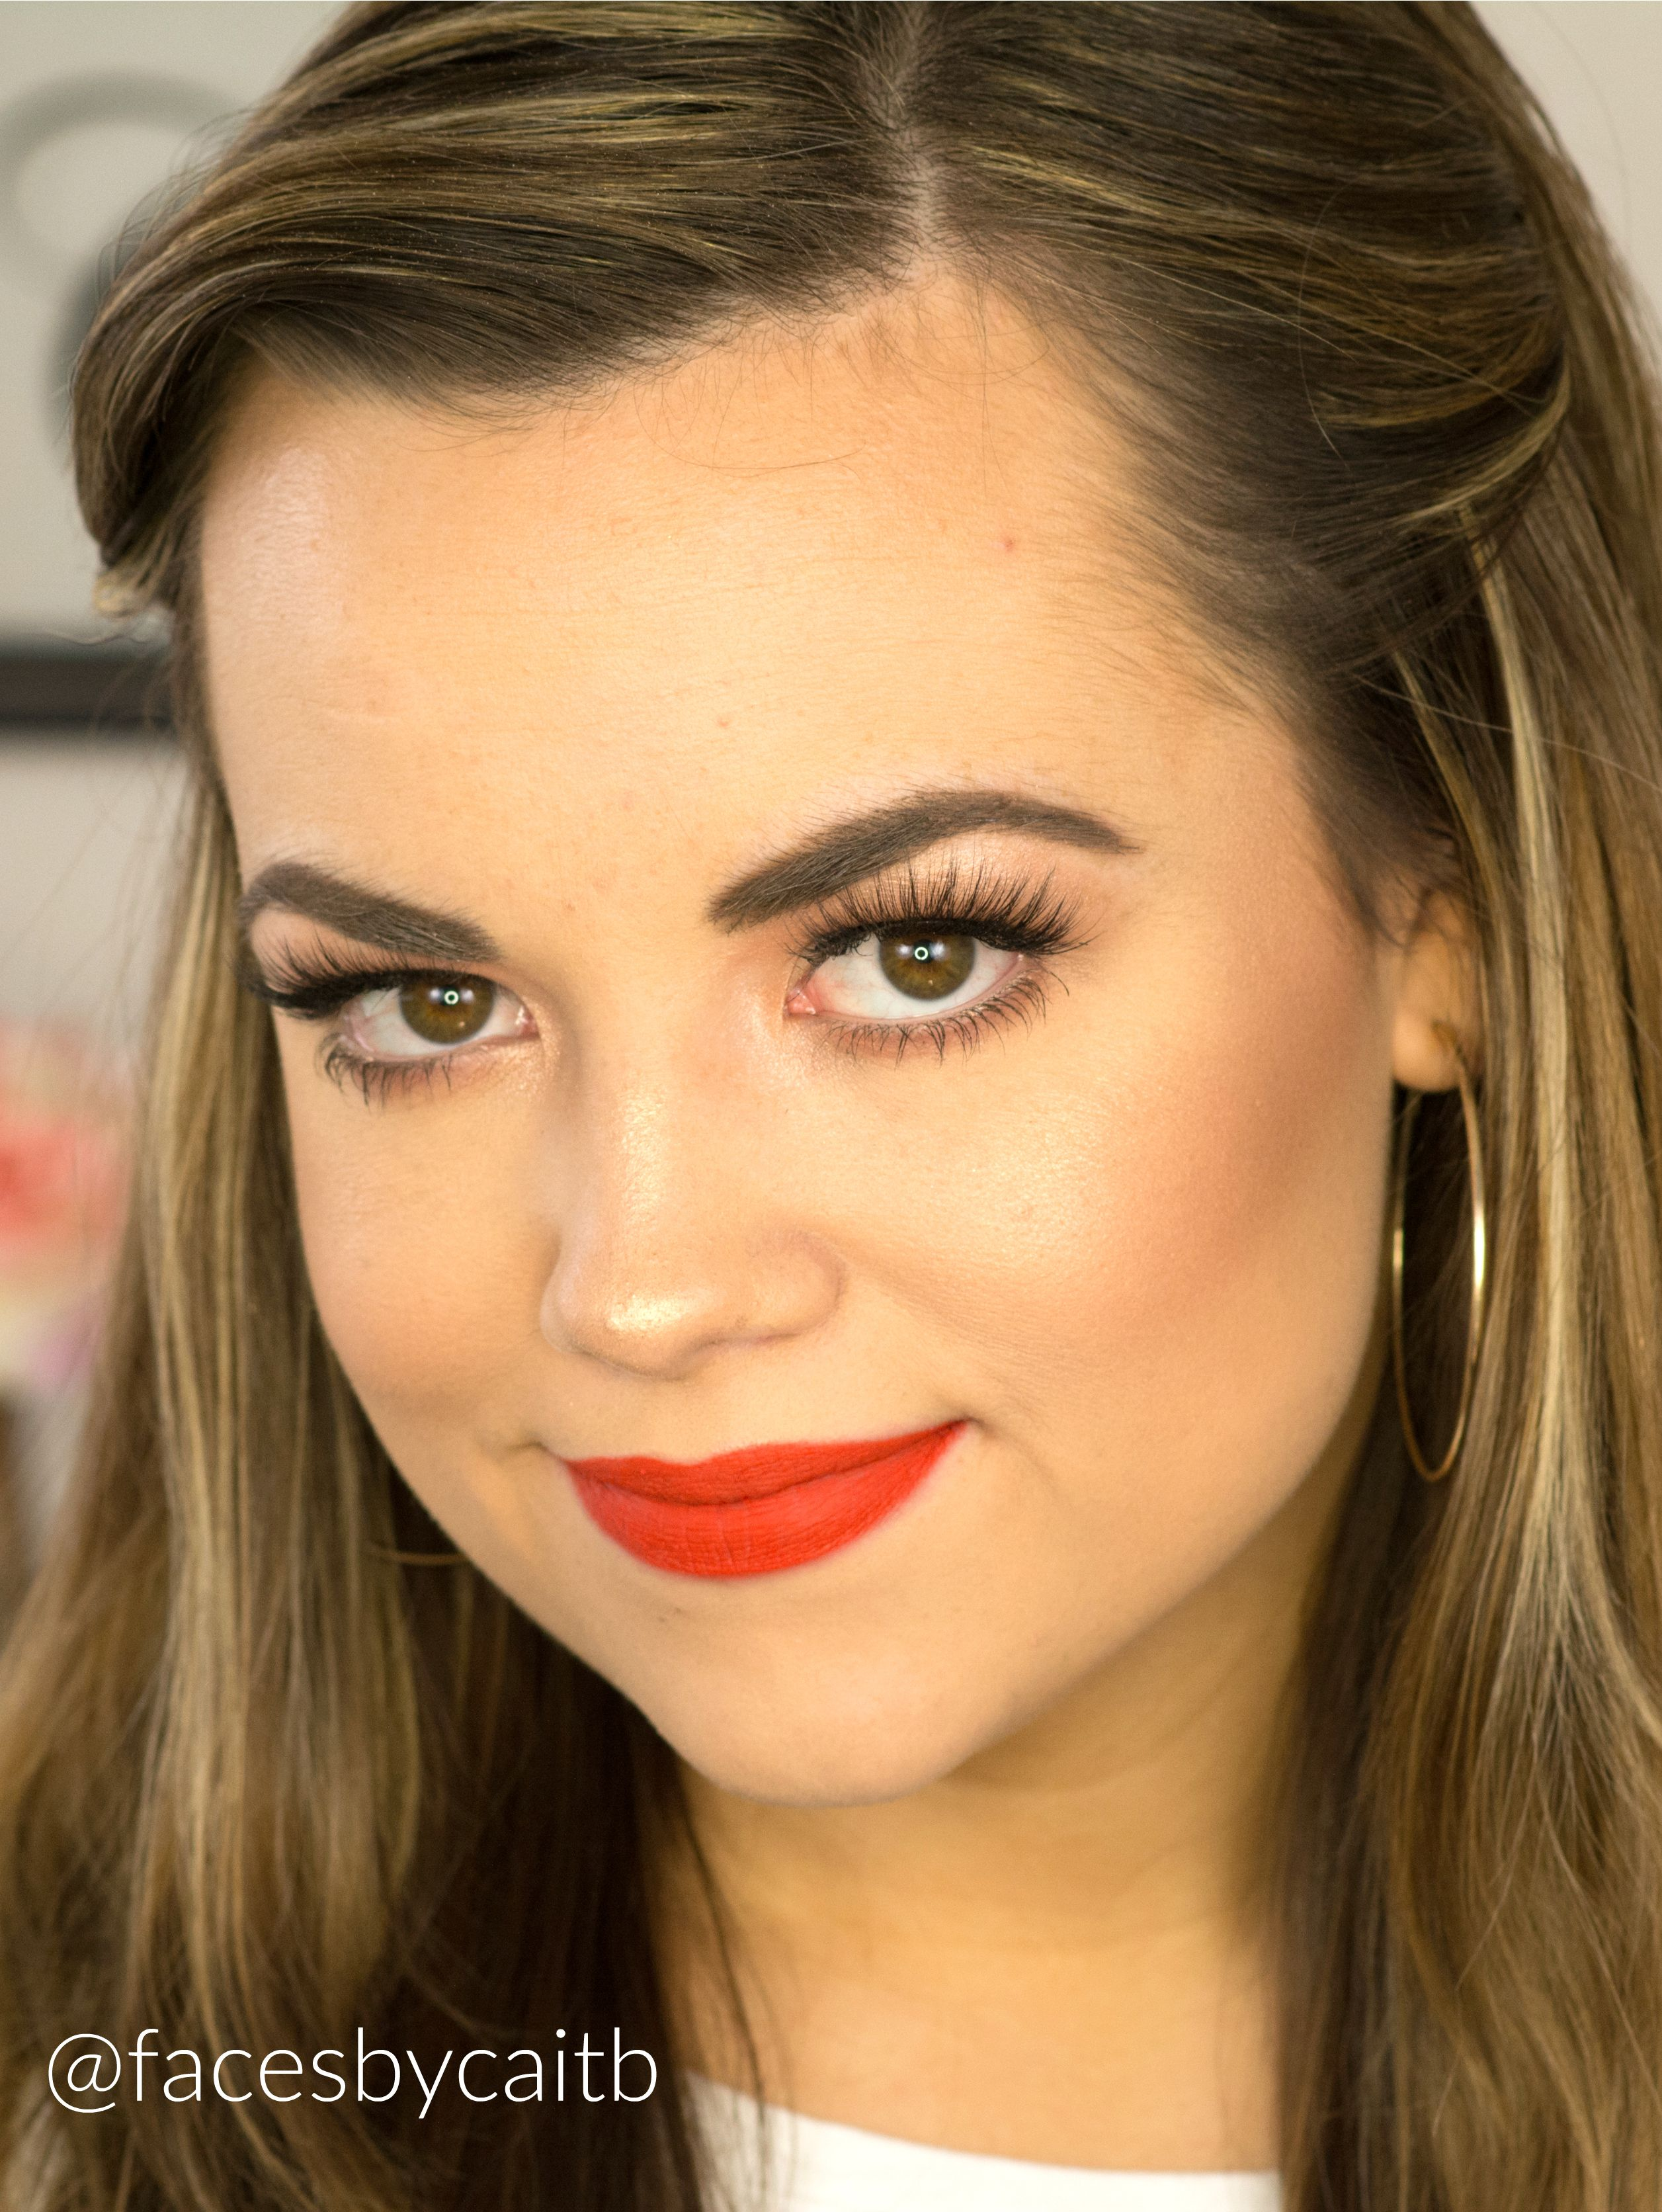 How to even out your eyelids without surgery youtube - Orange Red Lipstick Makeup Tutorial Youtube Com Facesbycaitb